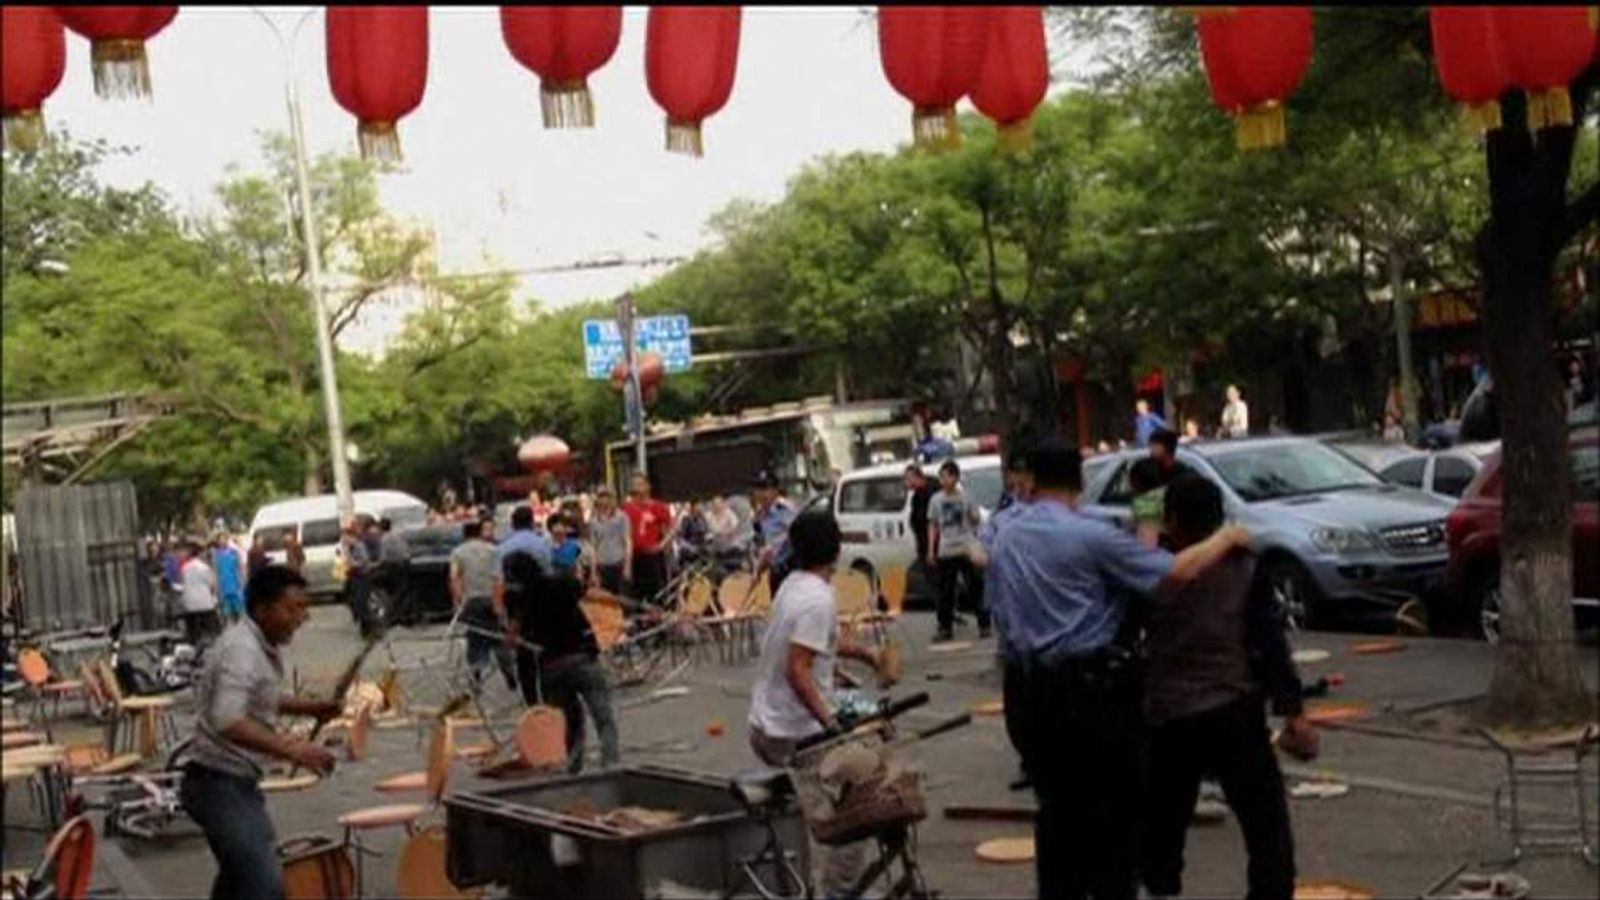 Groups of ethnic Tibetans and Han Chinese fight on the streets of Beijing